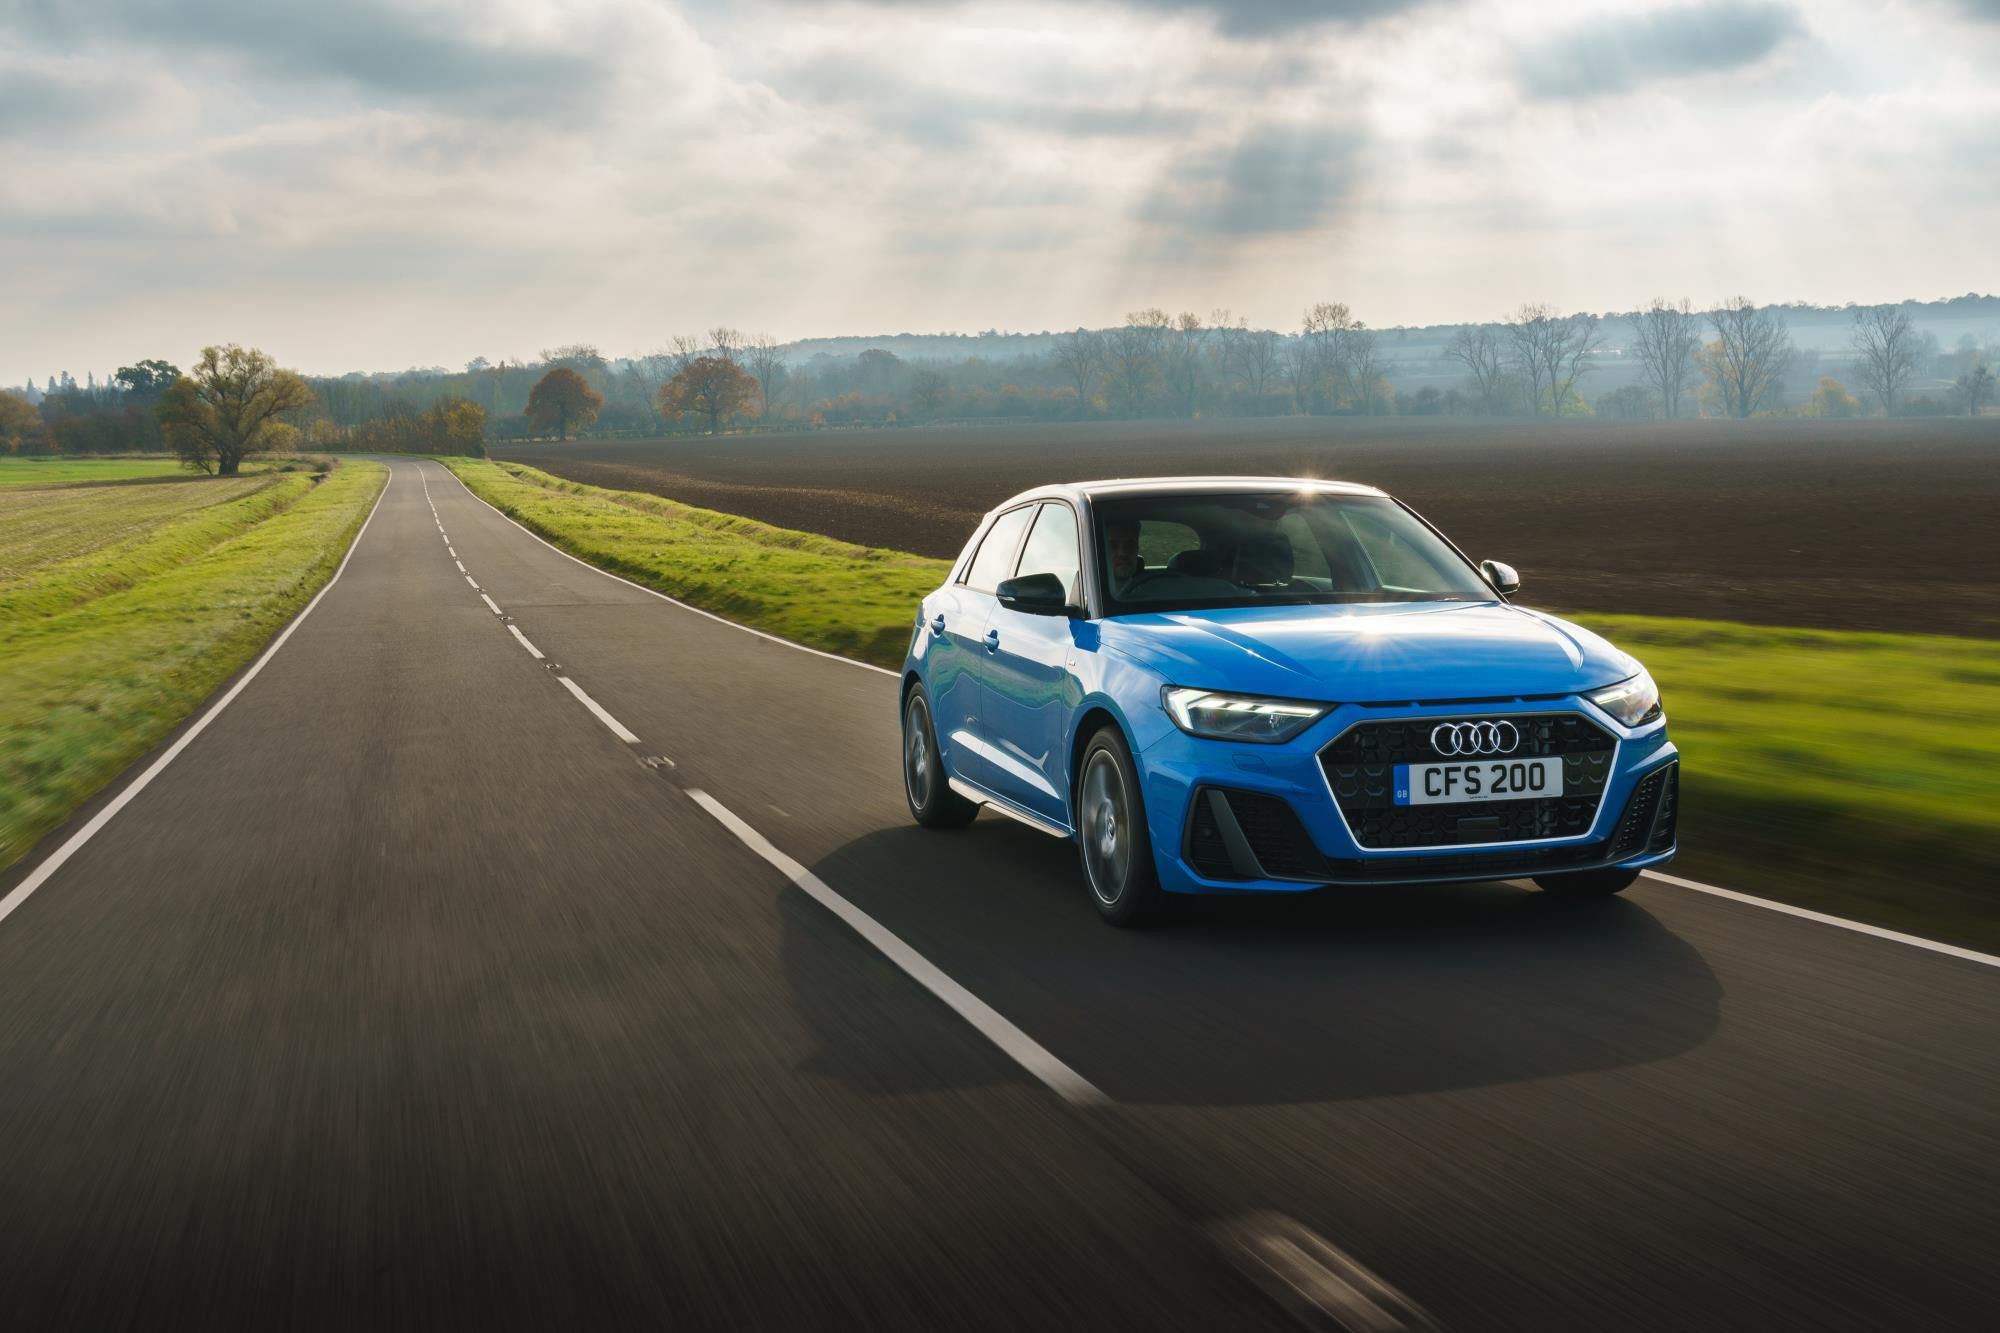 Bright blue Audi A1 driving toward you on a country road